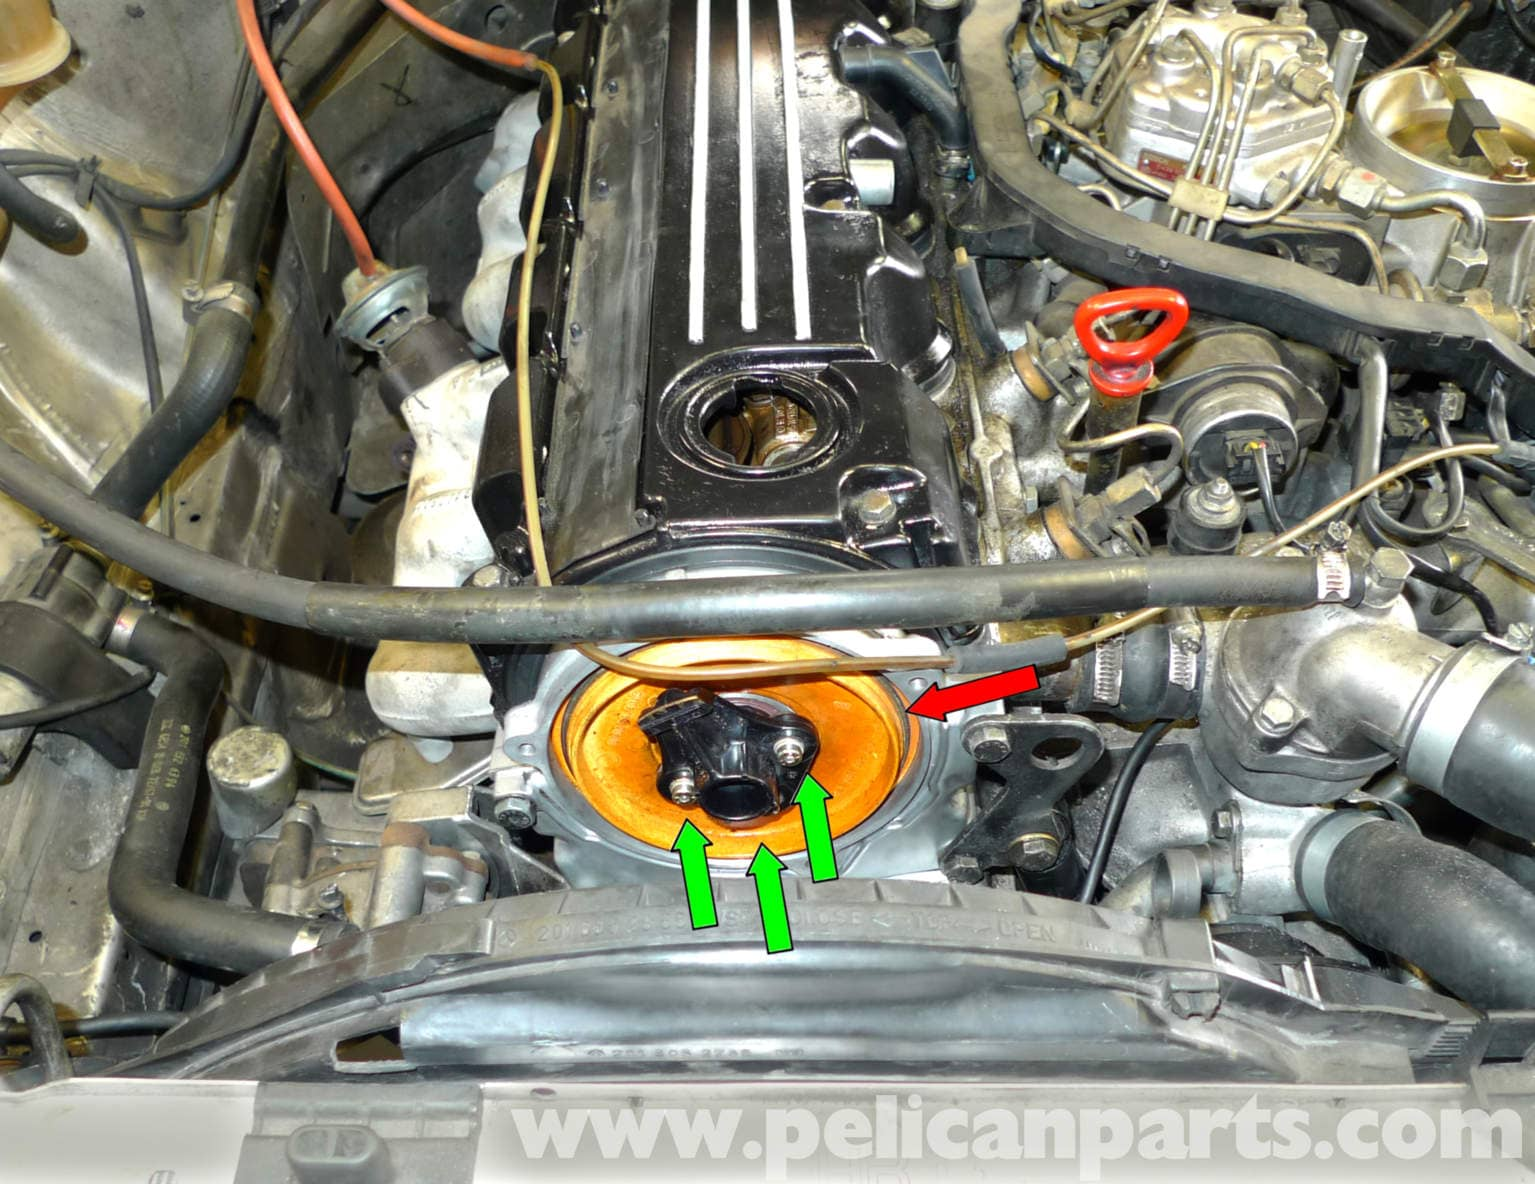 how to connect spark plug wires to a distributor cap